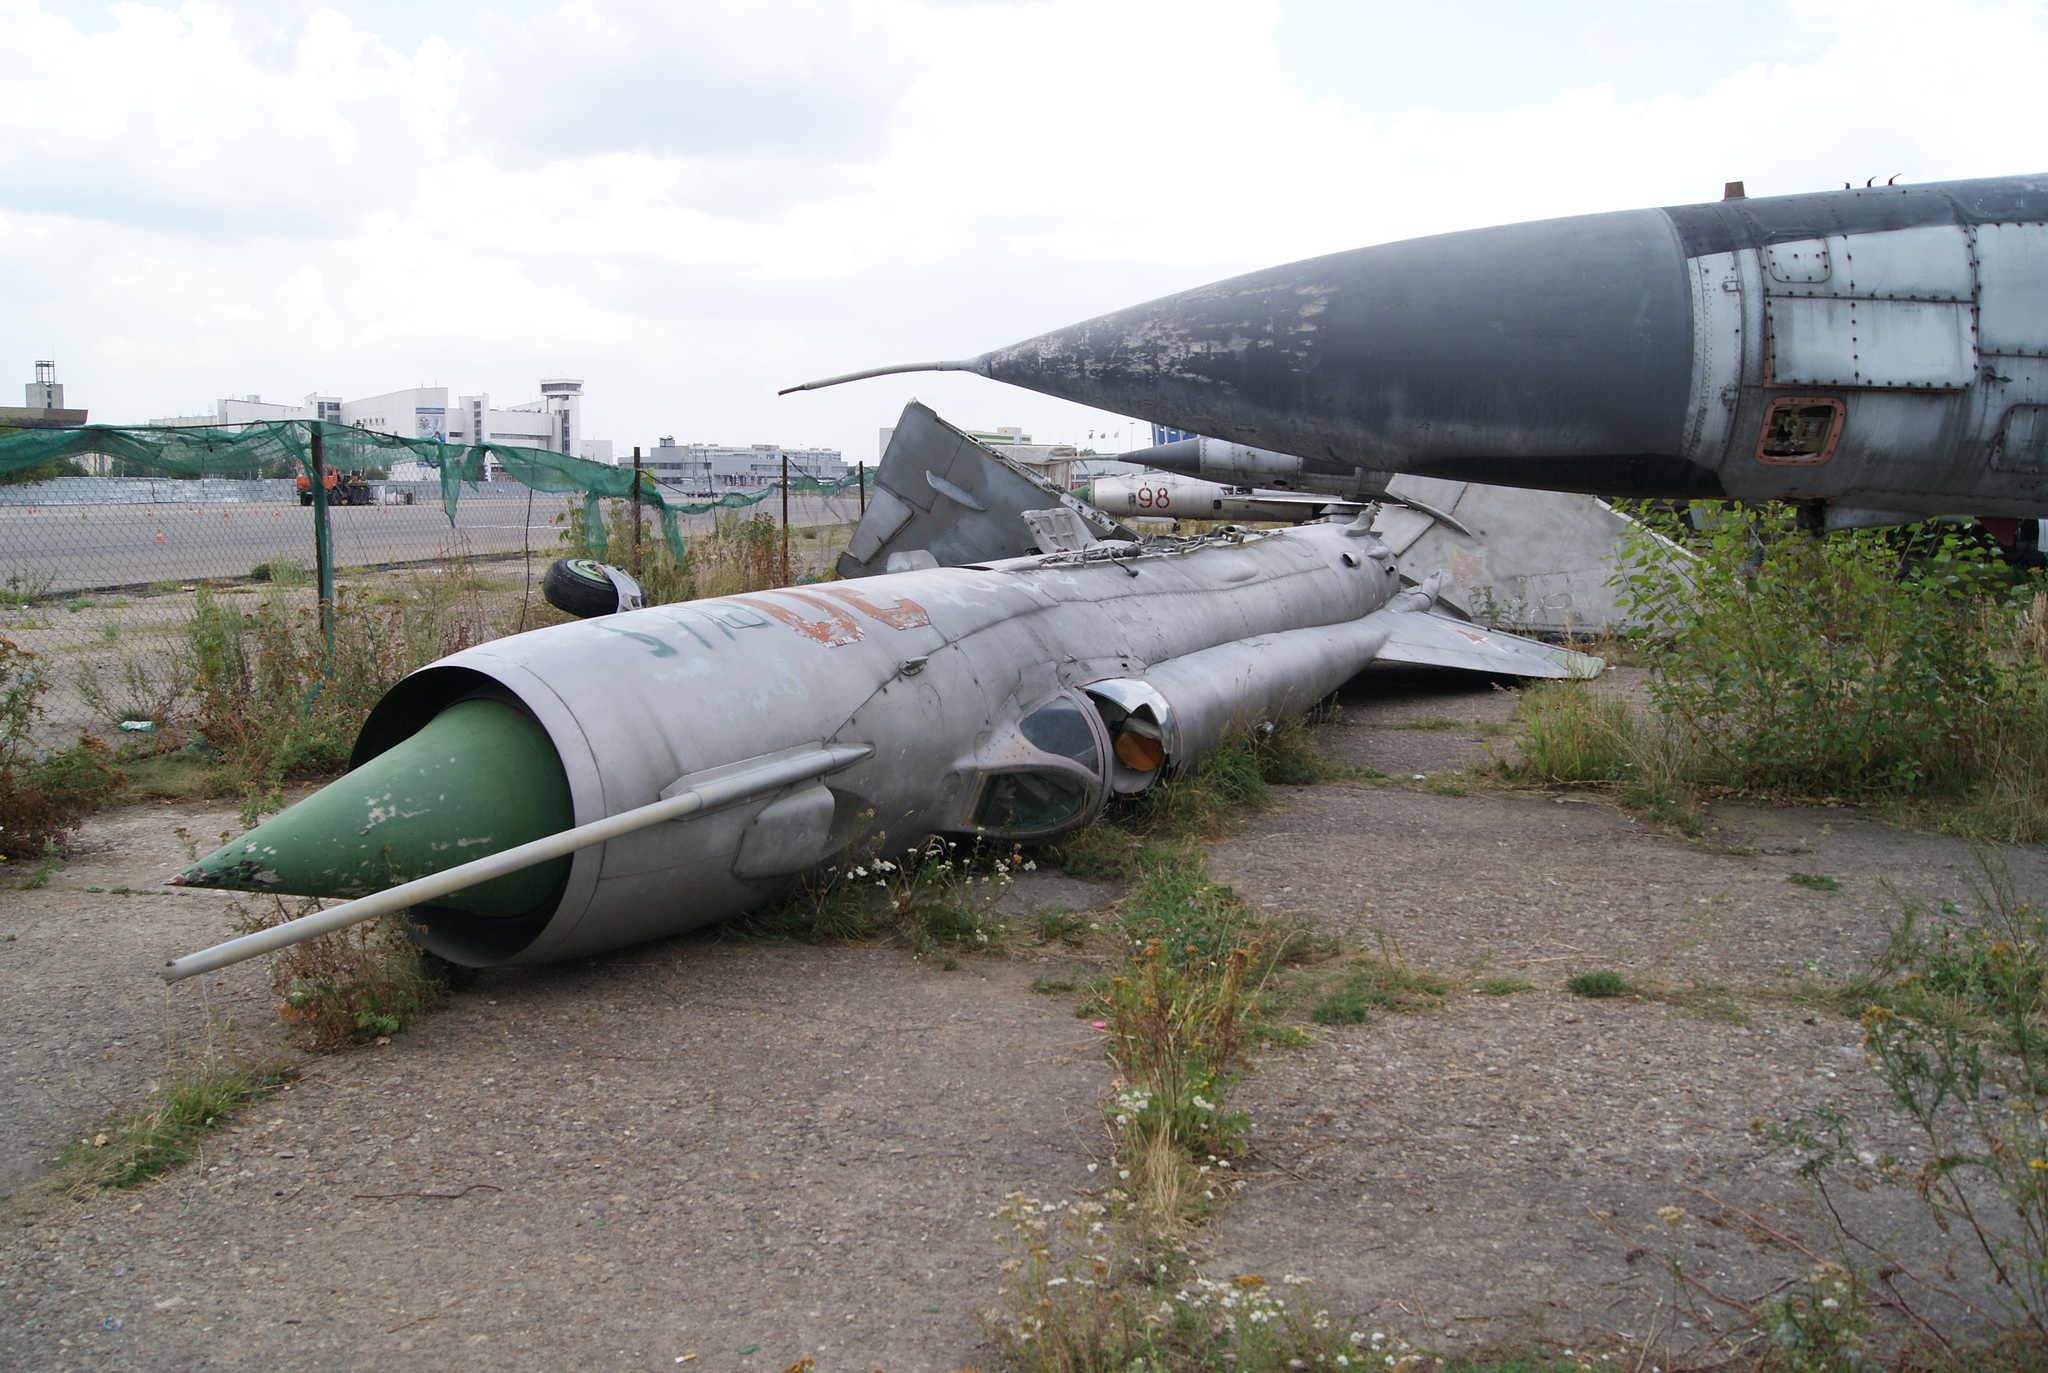 Mikoyan-Gurevich MiG-21 until recently was an intact plane. (Image Credit: Sergey Rodovnichenko, CC 3.0)